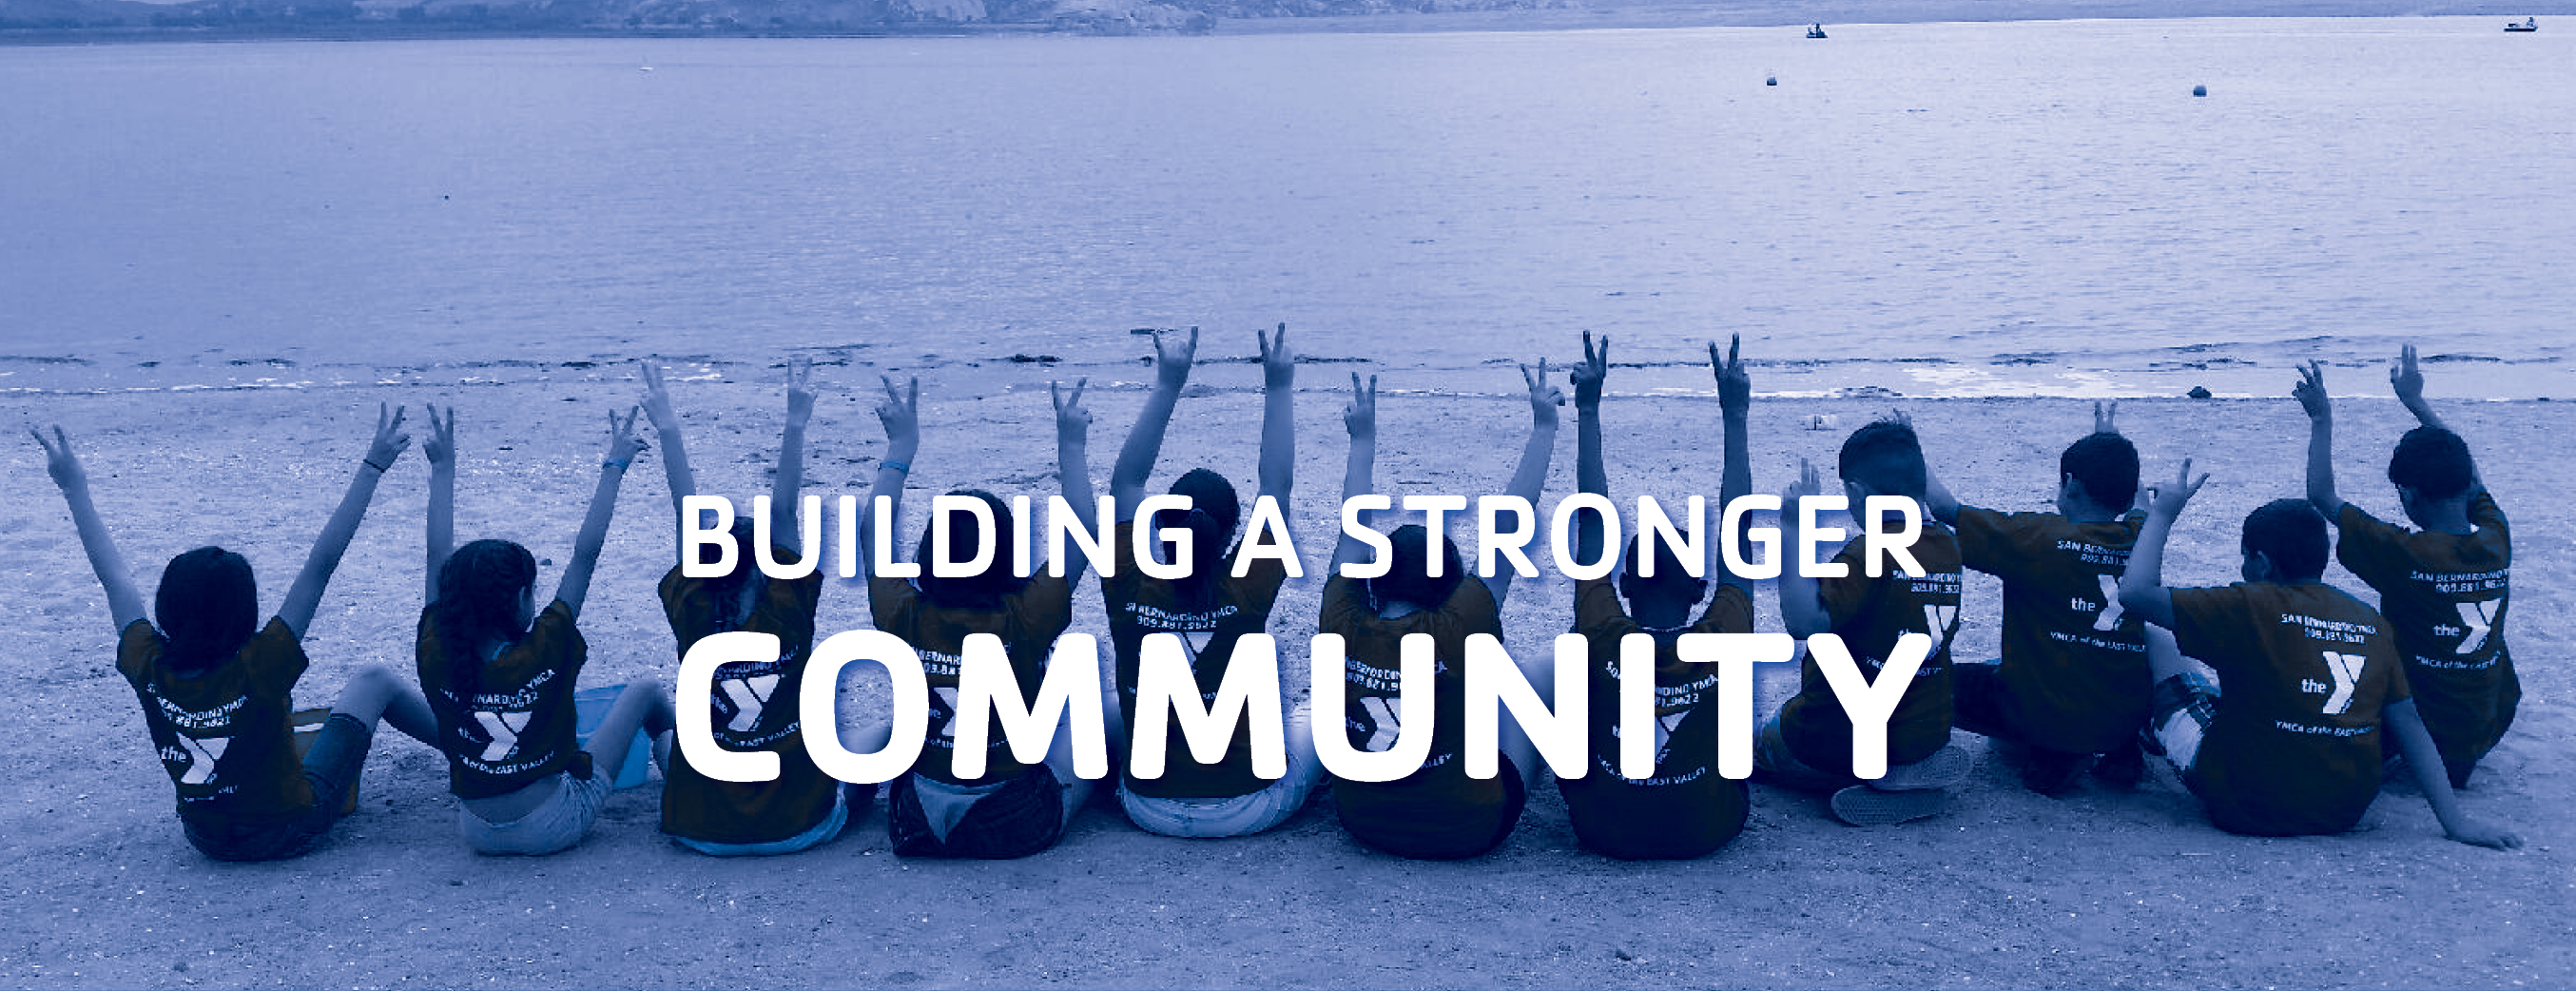 YMCA of the East Valley at a lake building a stronger community.